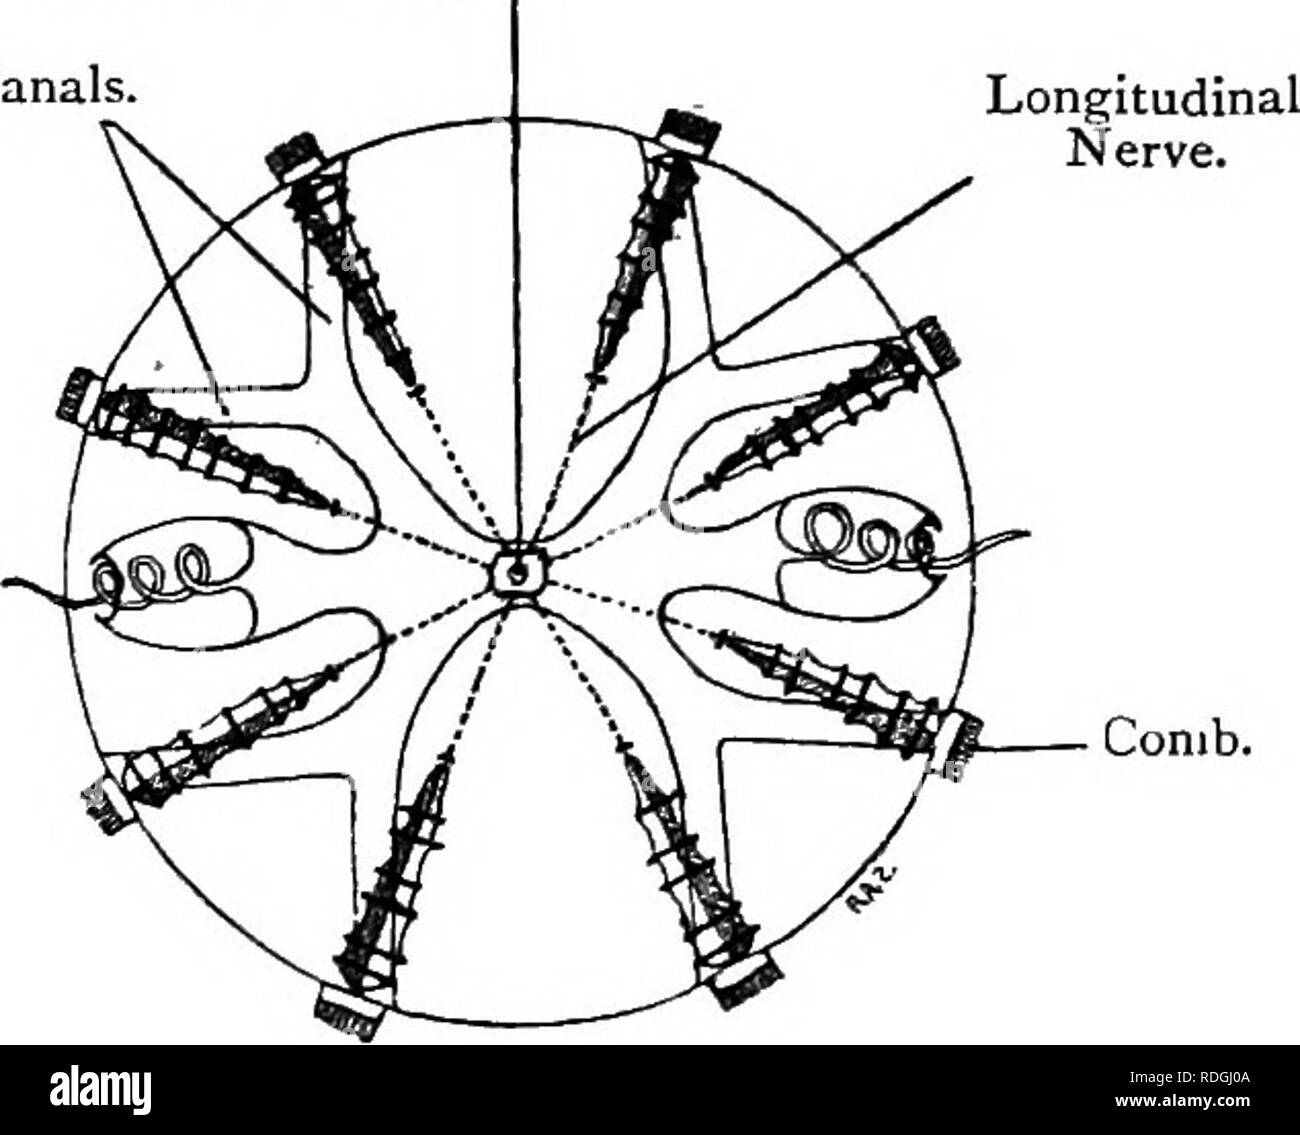 . Elementary text-book of zoology. 132 CCELENTERATA. Externally, Cydippe is bi-plano-symmetric, for the plane passing through the tentacles and their sheaths, called the coronal plane, differs from that perpendicular to it, or the sagittal plane. Both planes, however, divide the animal into symmetric halves. The gullet is flattened and Fig. 66.—Aboral ViEViT of Cydippe. Aboral Sense-organ. Horizontal Canals. (After Chun.) Tentacle. Comb. Fig. 67.—Adhesive Cells of Cydippe. (After Hertwig.) Highly Magnified. Head. elongated in the sagittal plane, as in Acthua. Each of these planes corresponds t - Stock Image